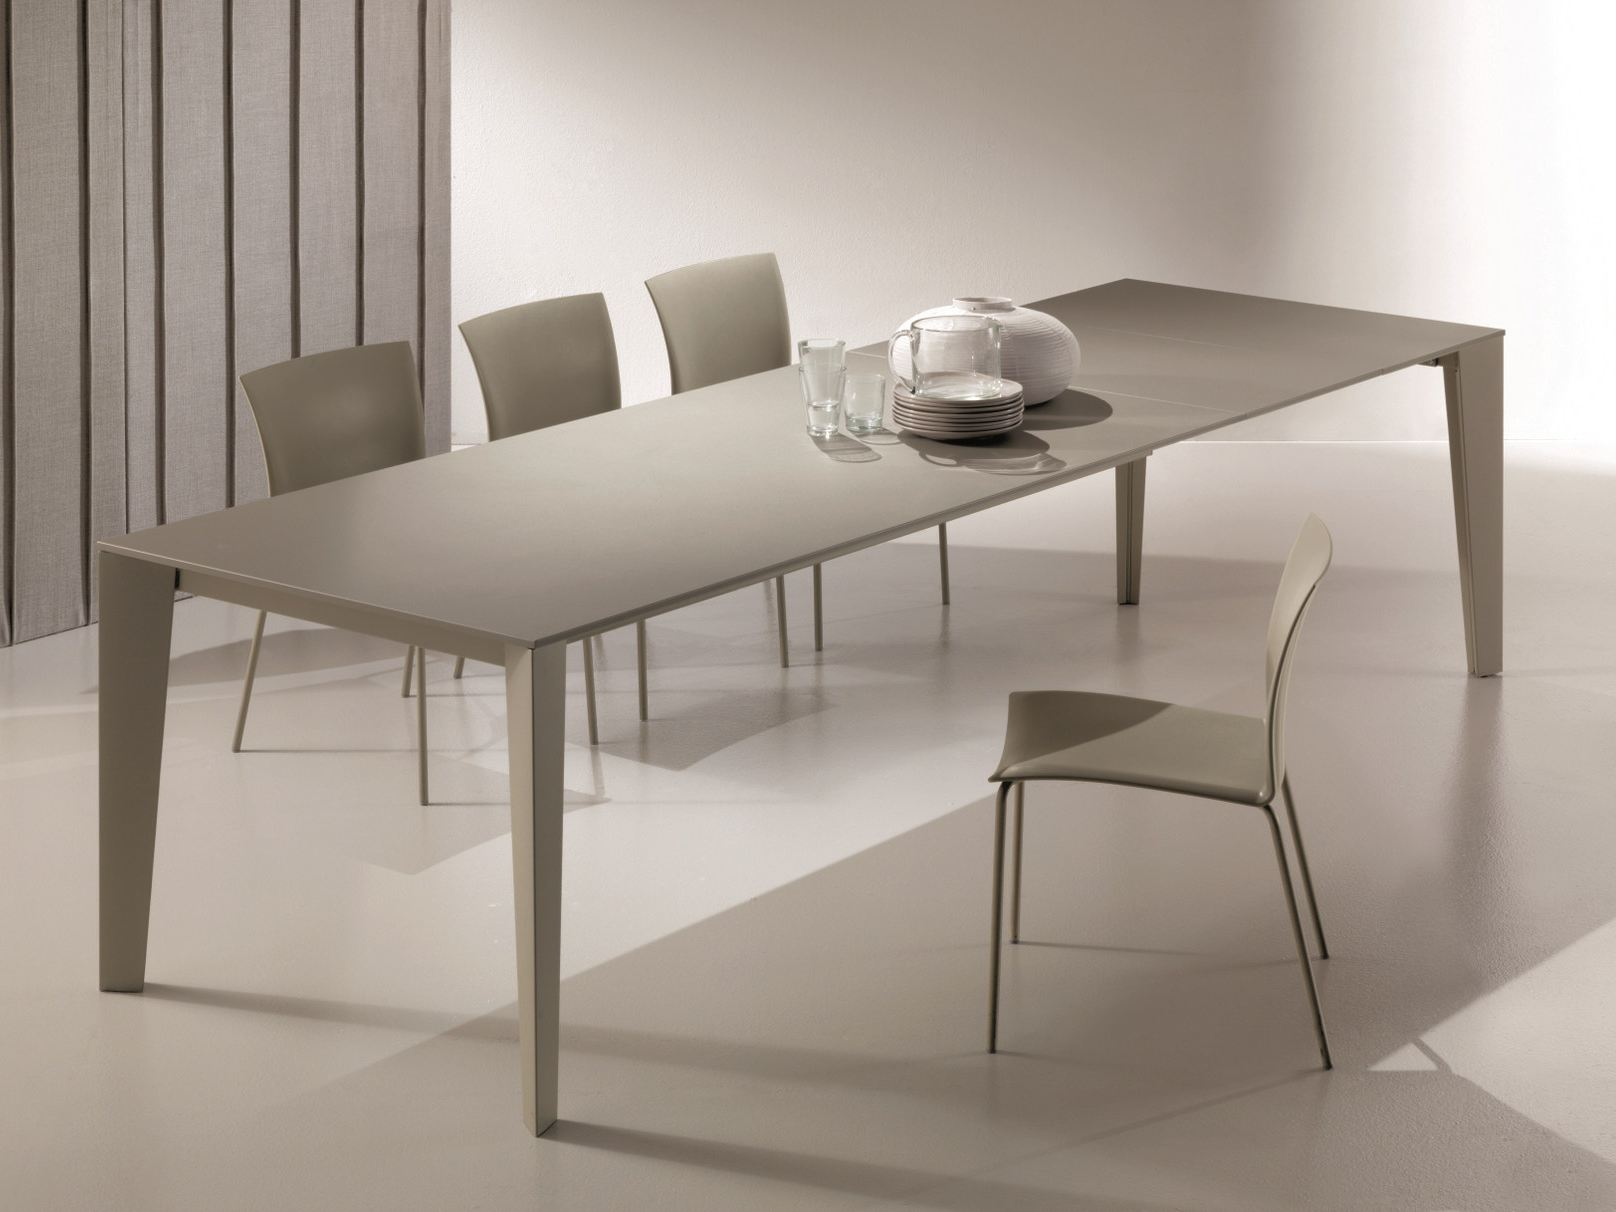 extending dining table cruz tables collection by bontempi. Black Bedroom Furniture Sets. Home Design Ideas